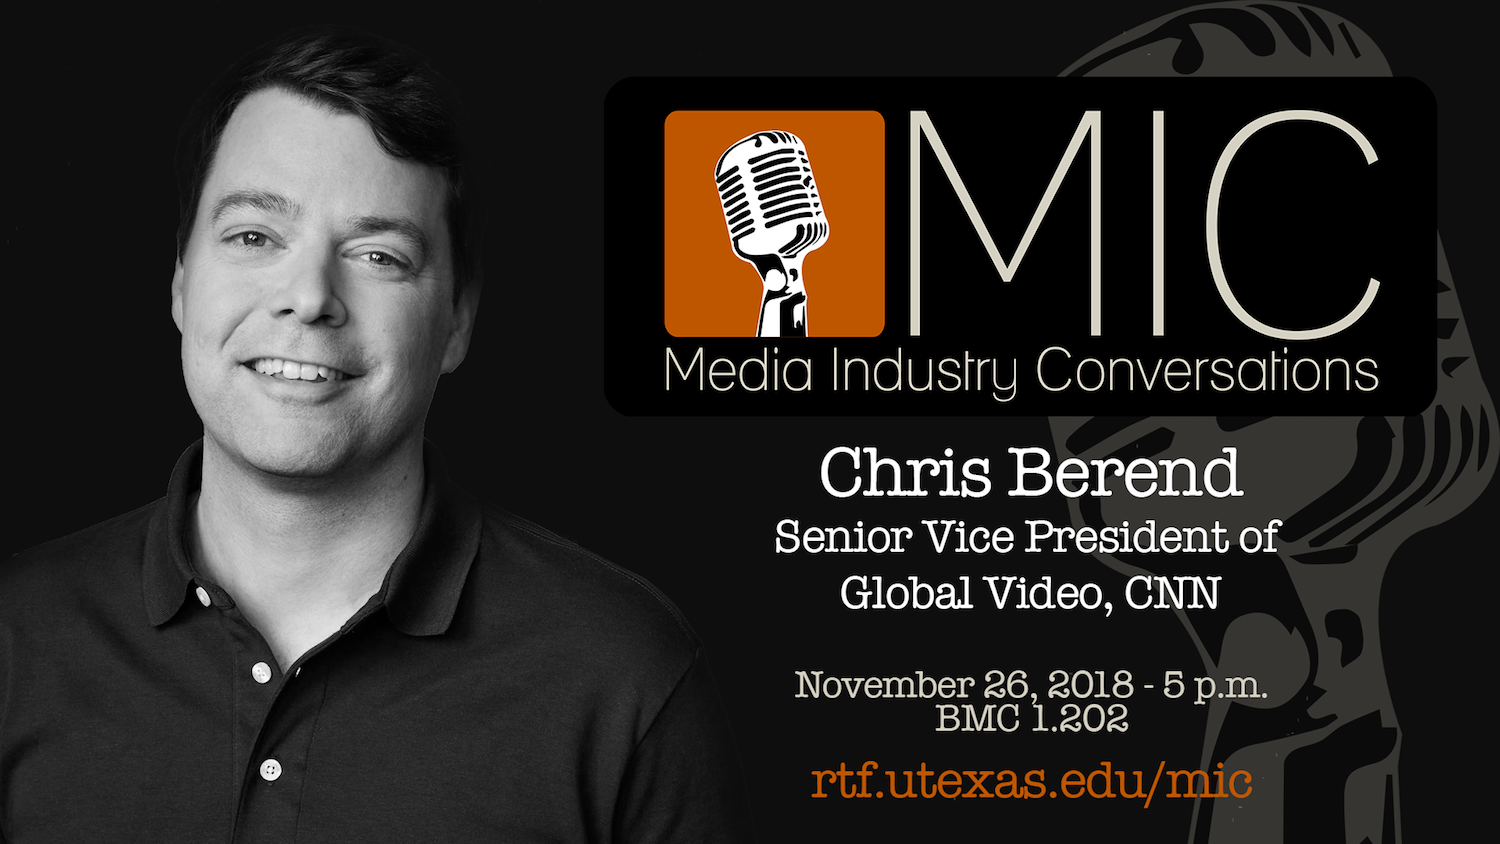 chris_berend_MIC_talk_november_26_2018_5pm_BMC_1.202